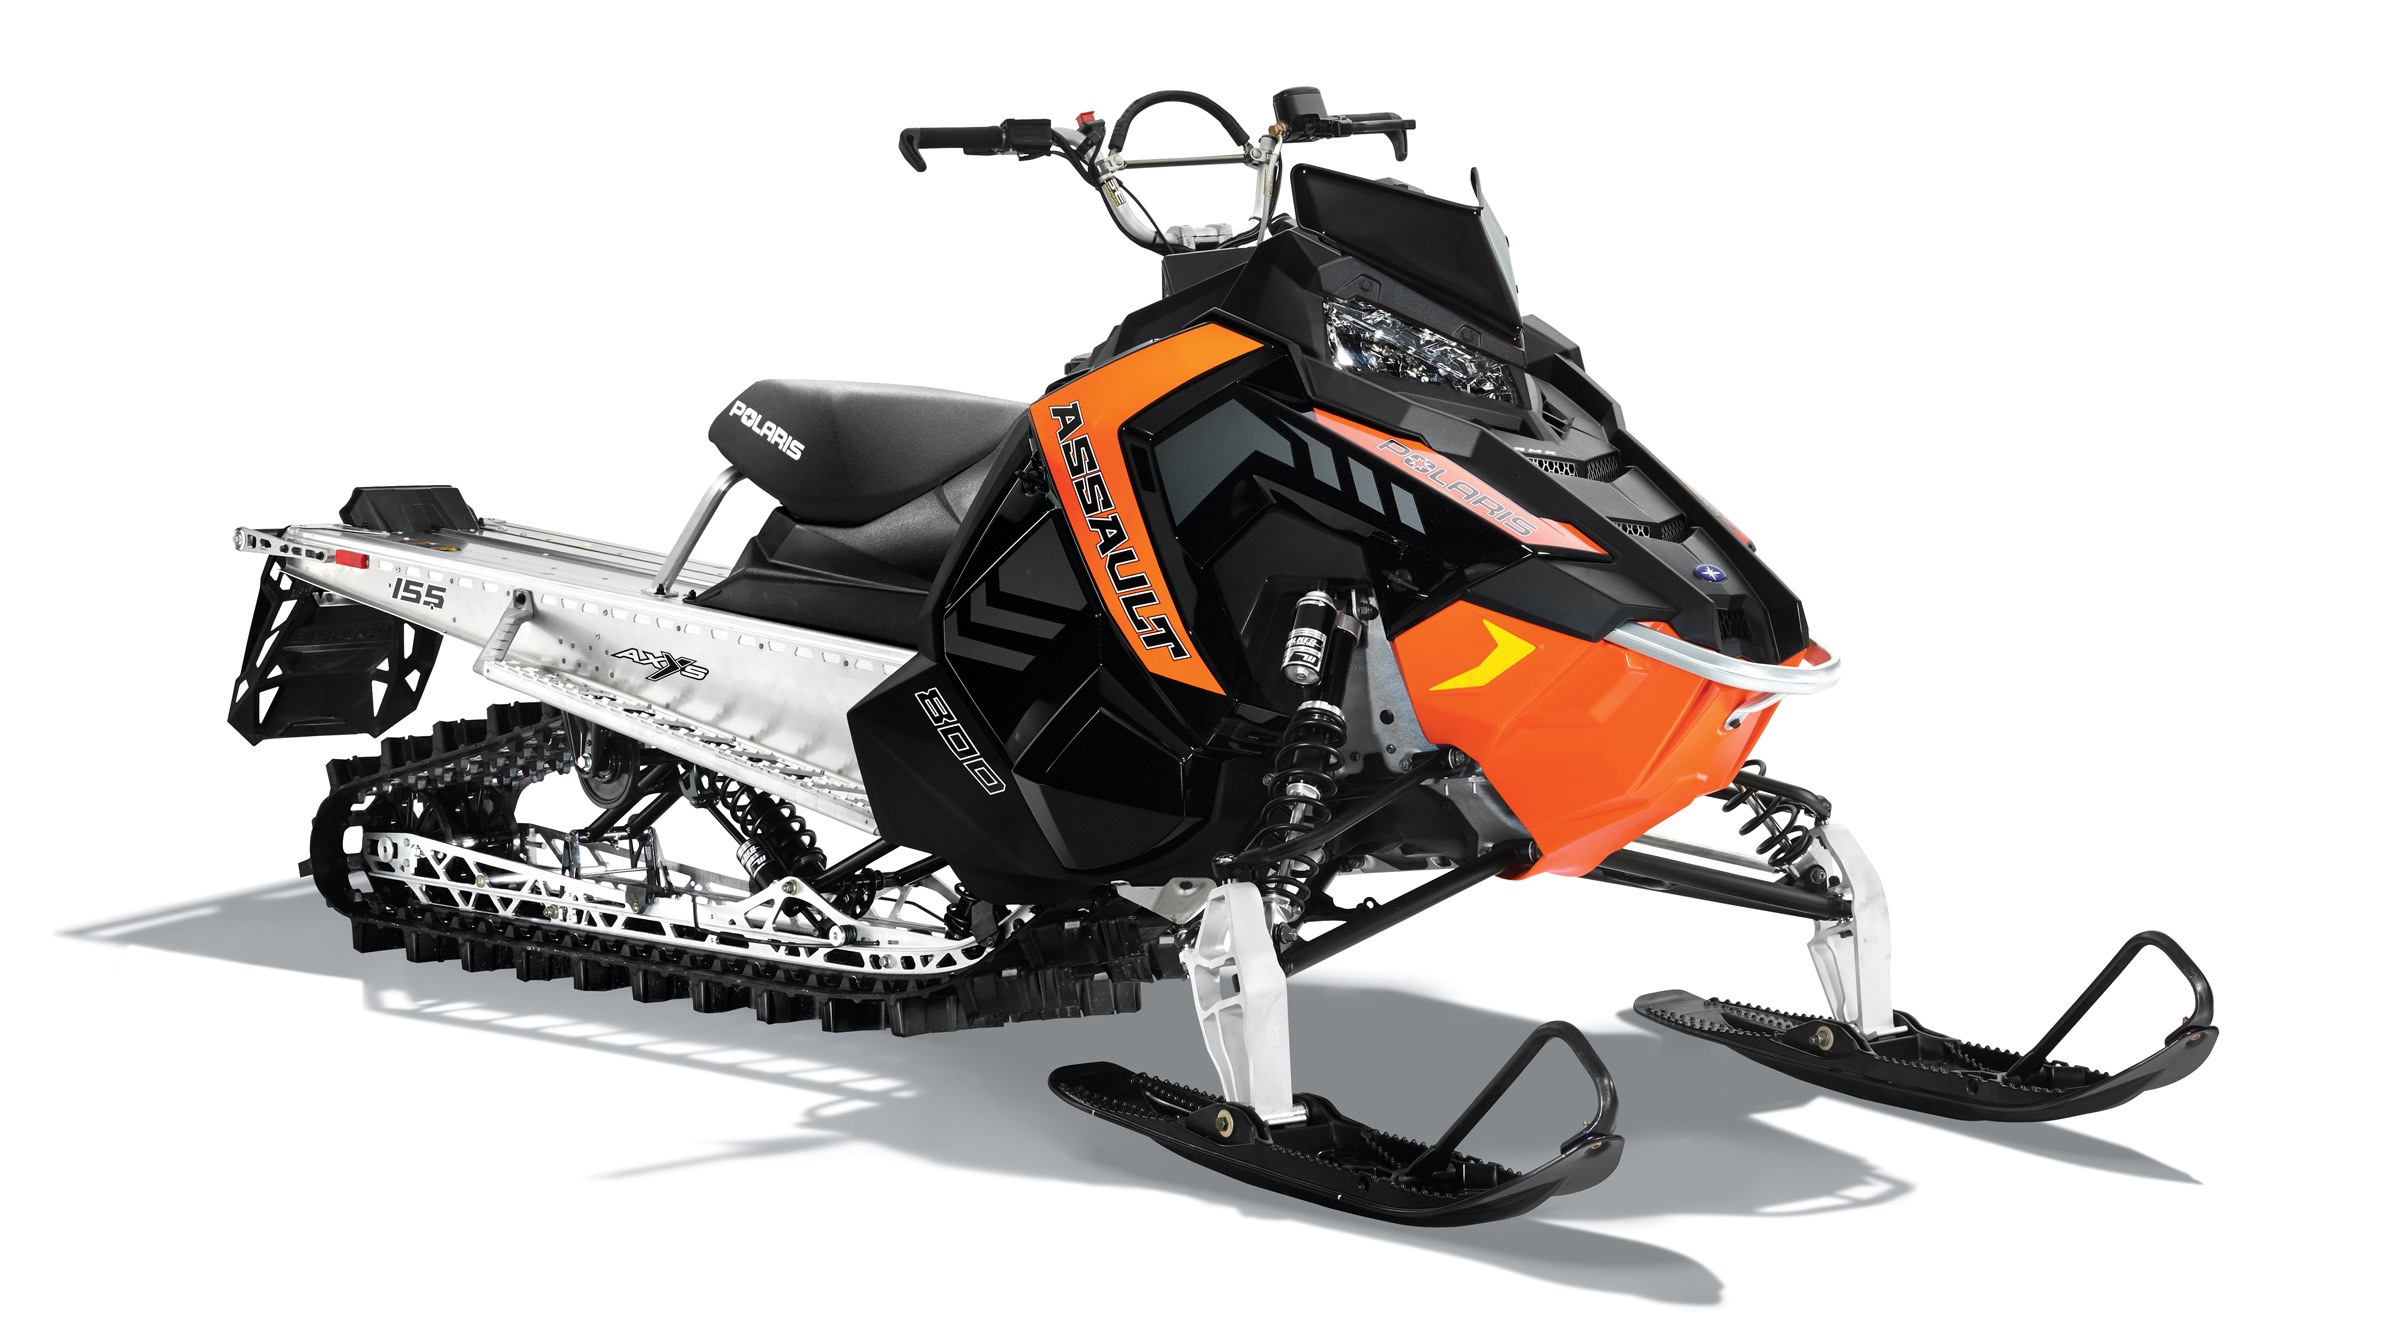 2016 Polaris 800 RMK ASSAULT 155 in Rushford, Minnesota